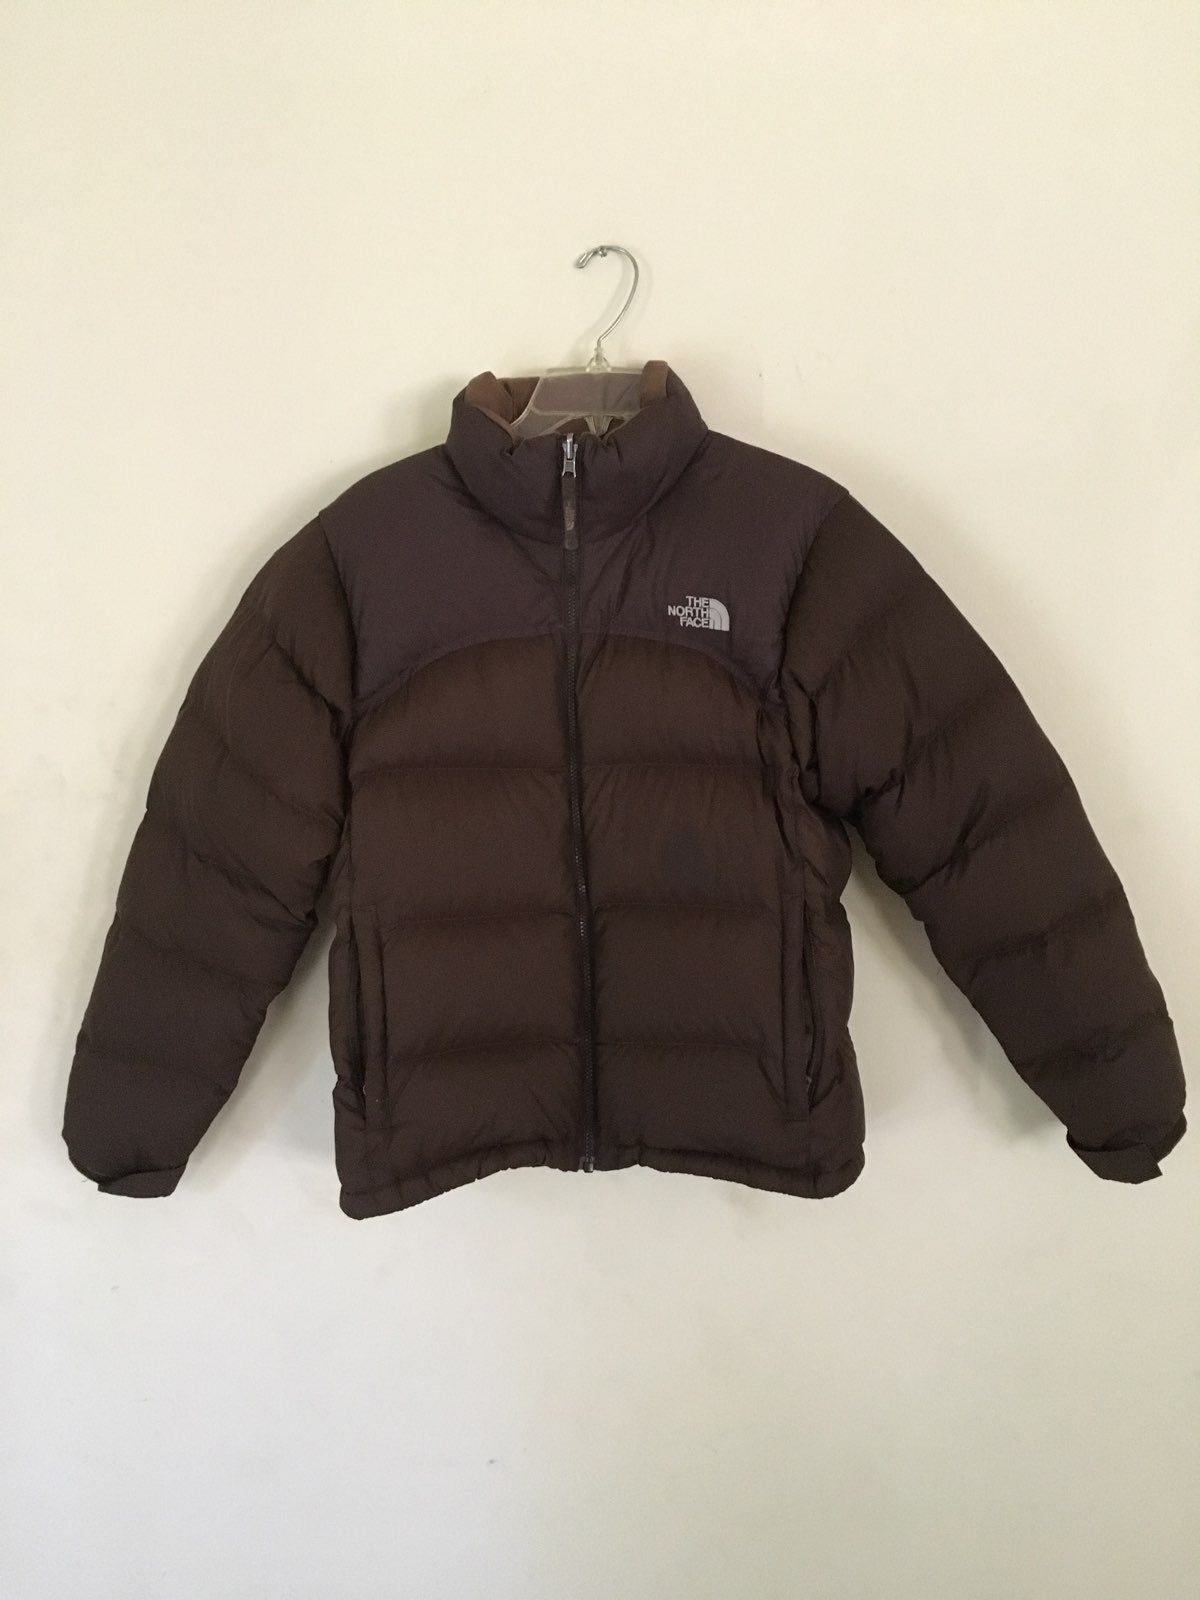 Brown Puffer The North Face Jacket 700 Great Condition Small Stain As C Brown North Face Jacket North Face Puffer Jacket The North Face Puffer Jacket Brown [ 1600 x 1200 Pixel ]